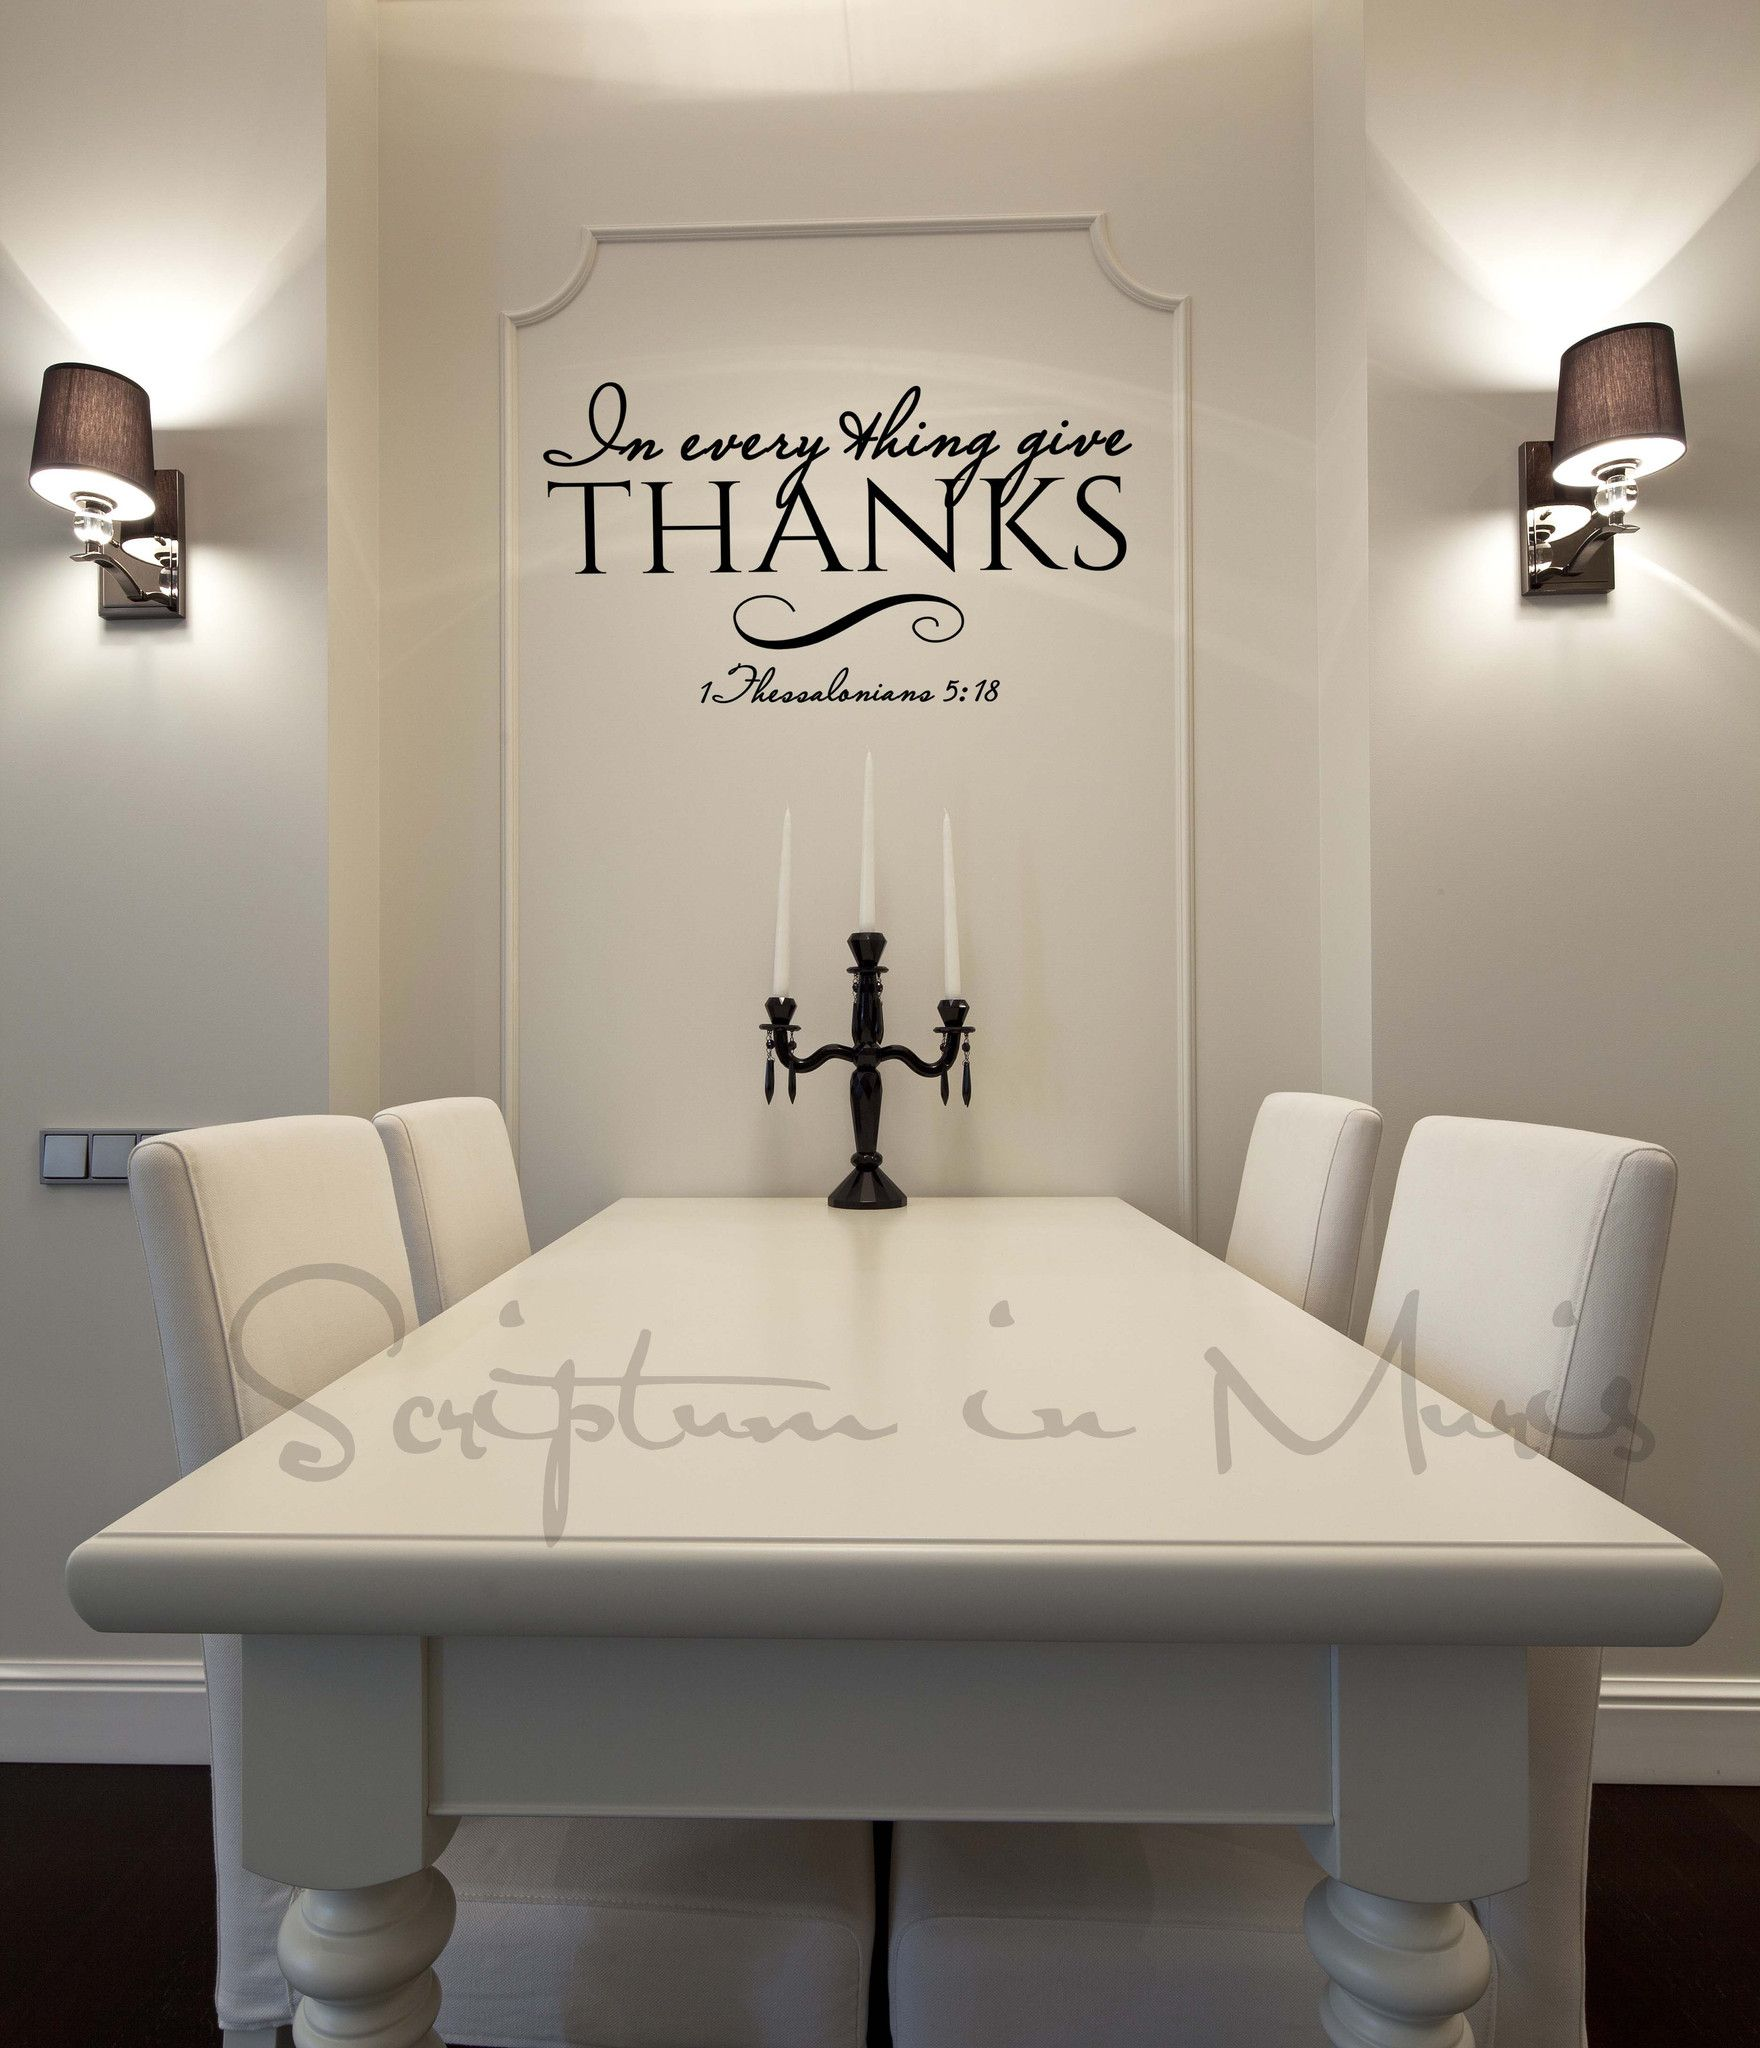 In Every Thing Give Thanks Dining Room or Kitchen Vinyl  : d746e081dd1aefd0c16b223ac5a43093 from www.pinterest.com size 1760 x 2048 jpeg 280kB